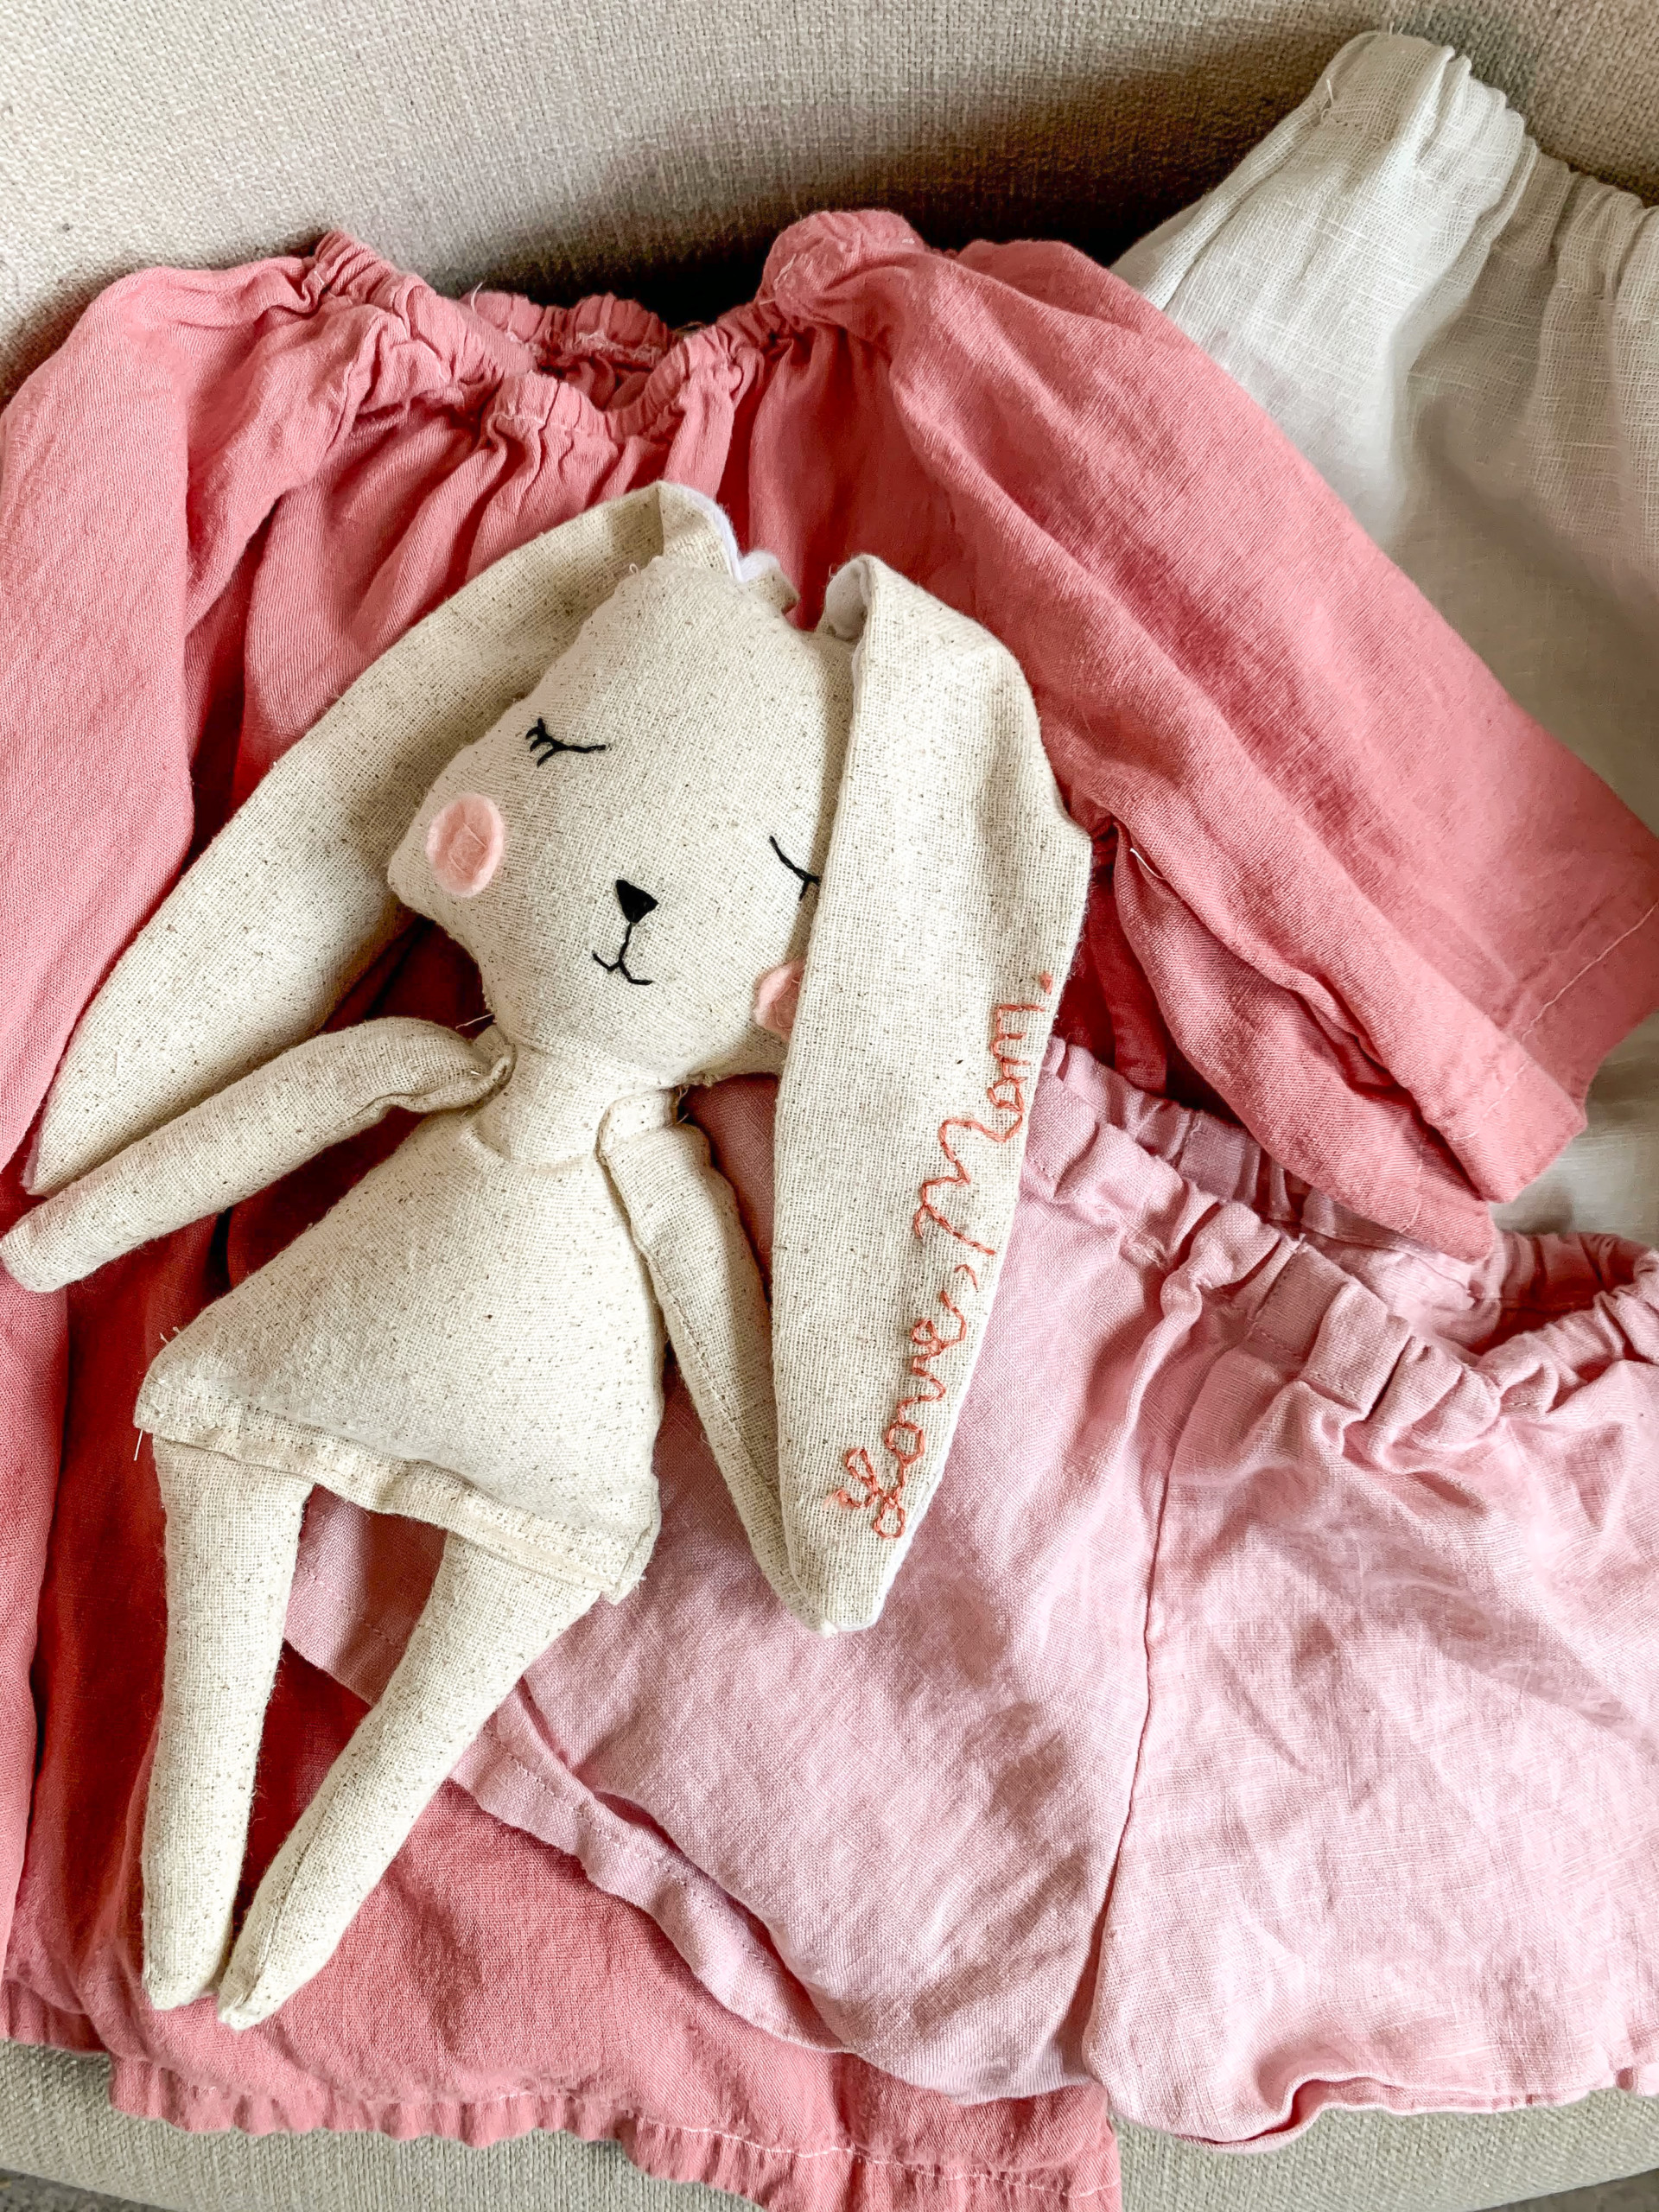 A handmade rabbit doll on top of pink kid's clothes.